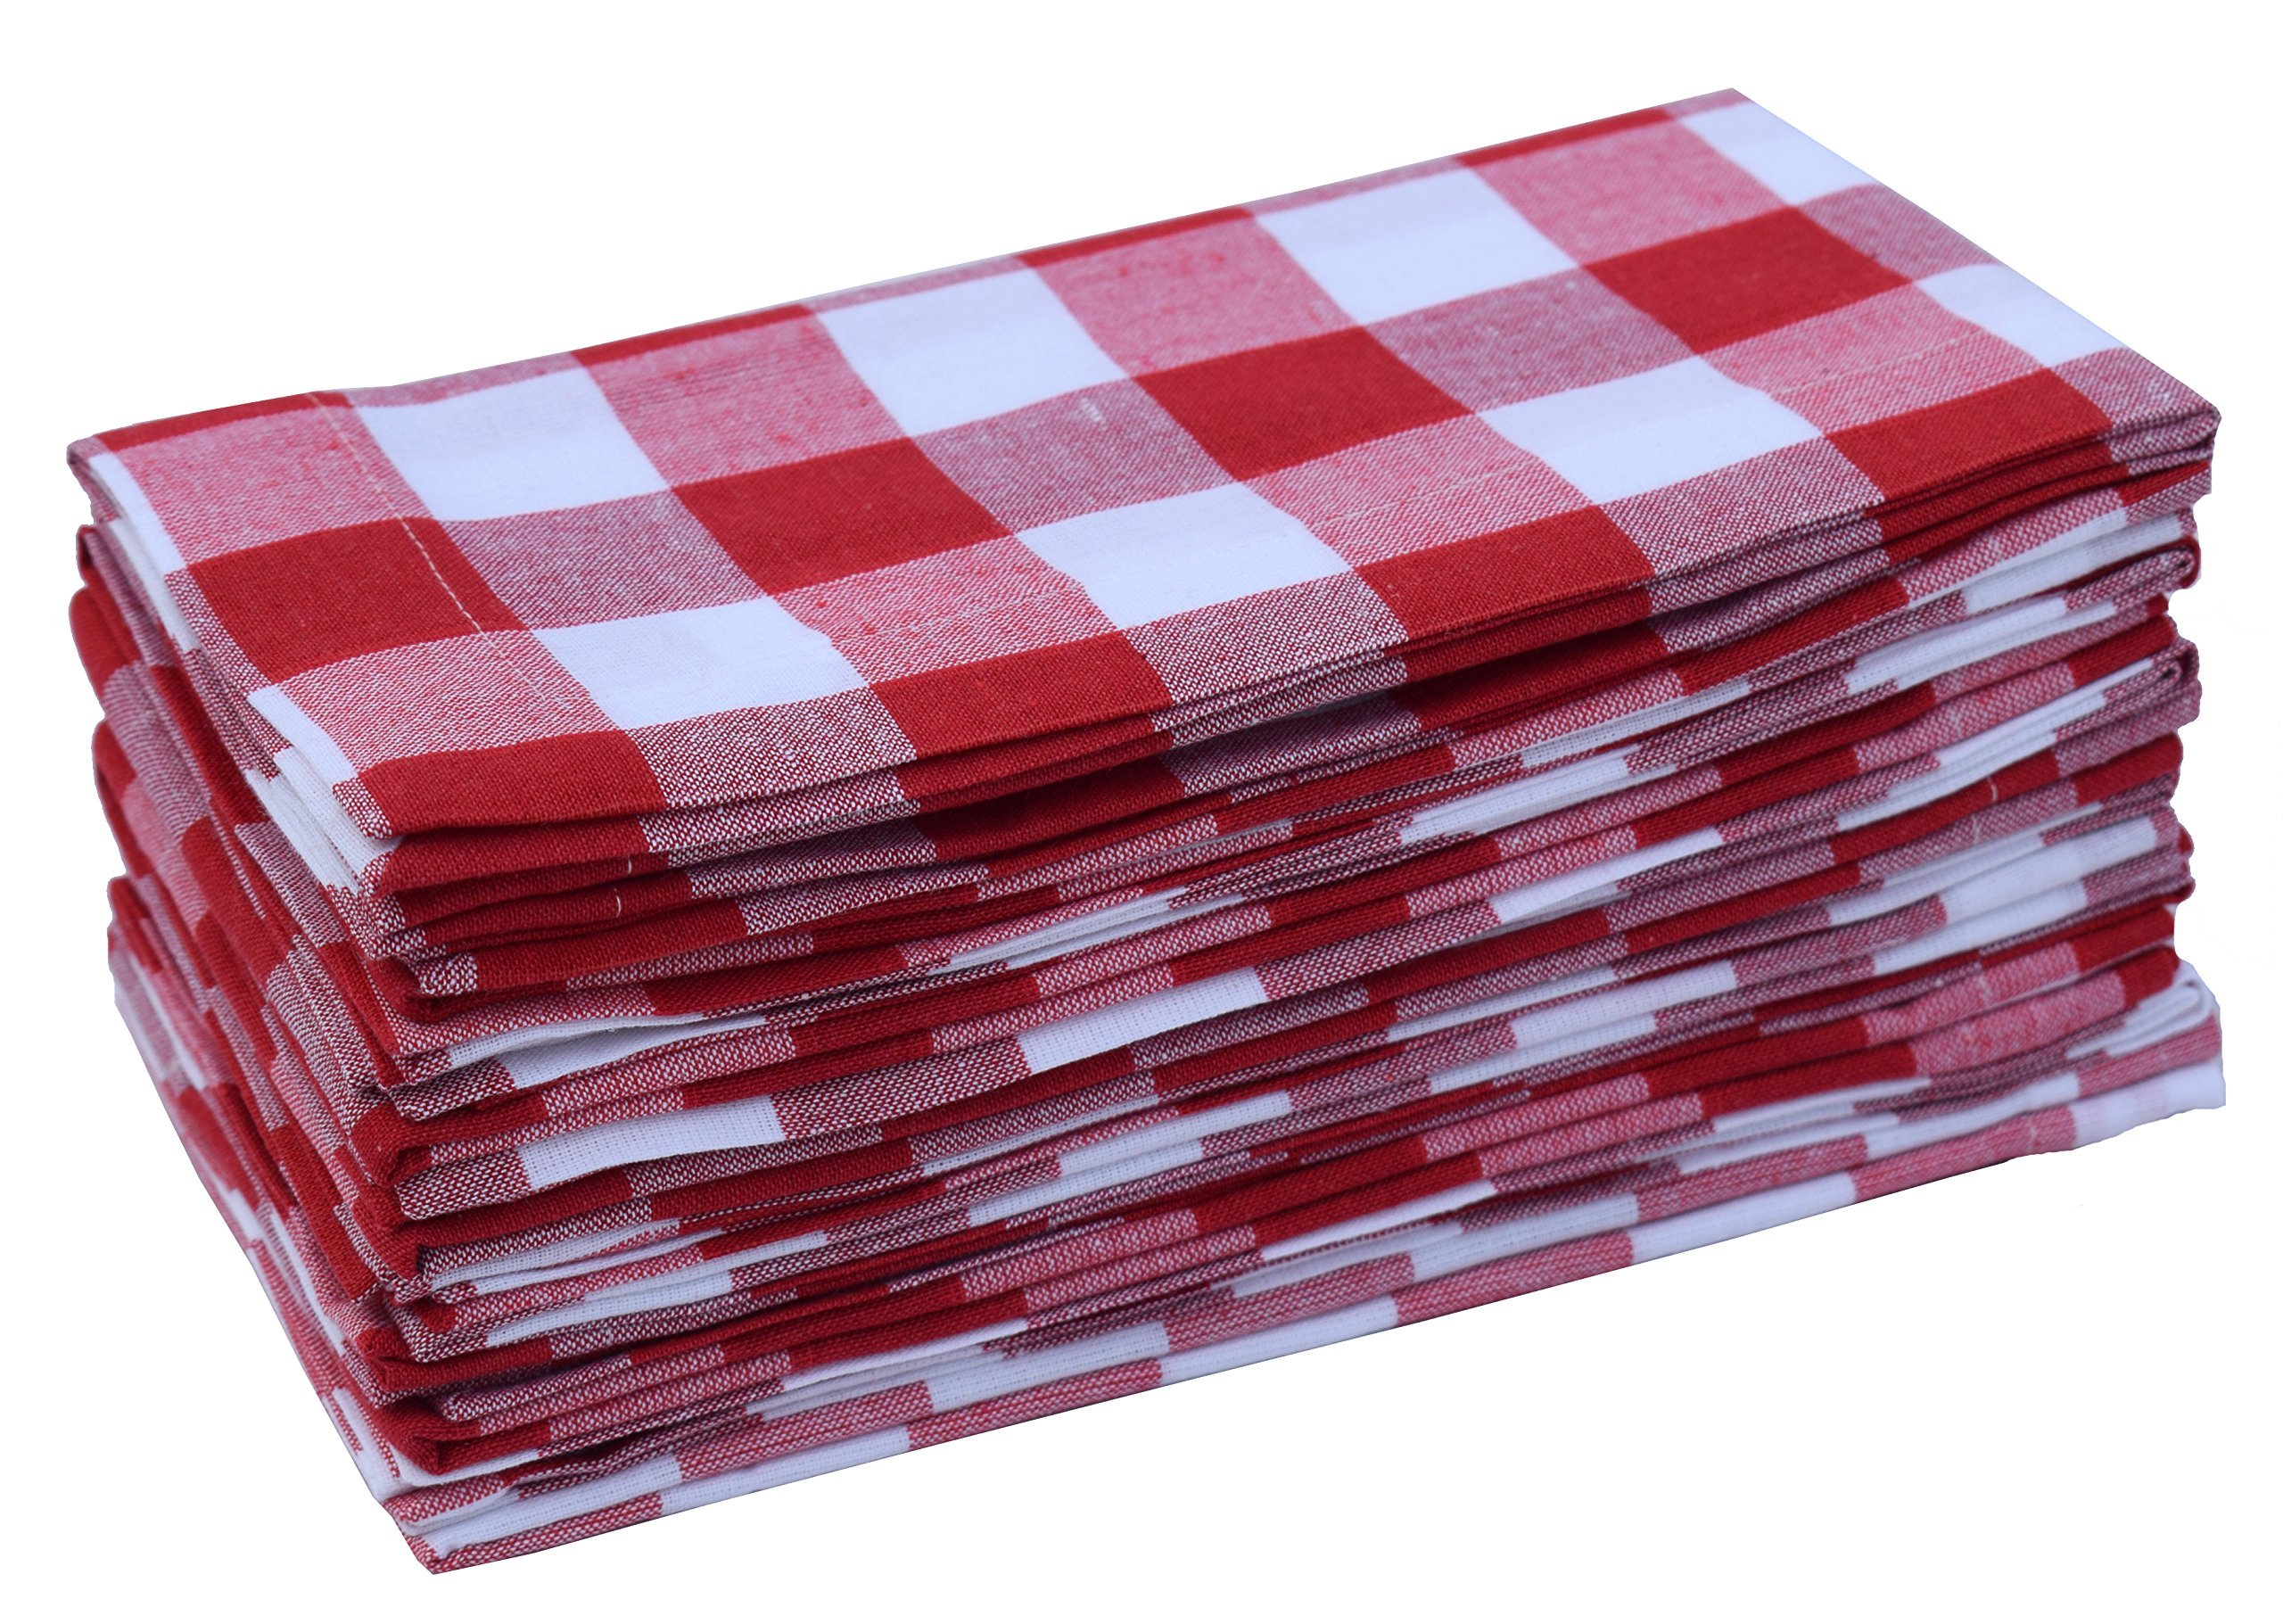 Linen Clubs Pack of 12 Red -White 100% Cotton Yarn Dyed Gingham Check Dinner Napkins 18x18Inch,Clambake Beach Party Nautical Dinner Napkins as Well Offered